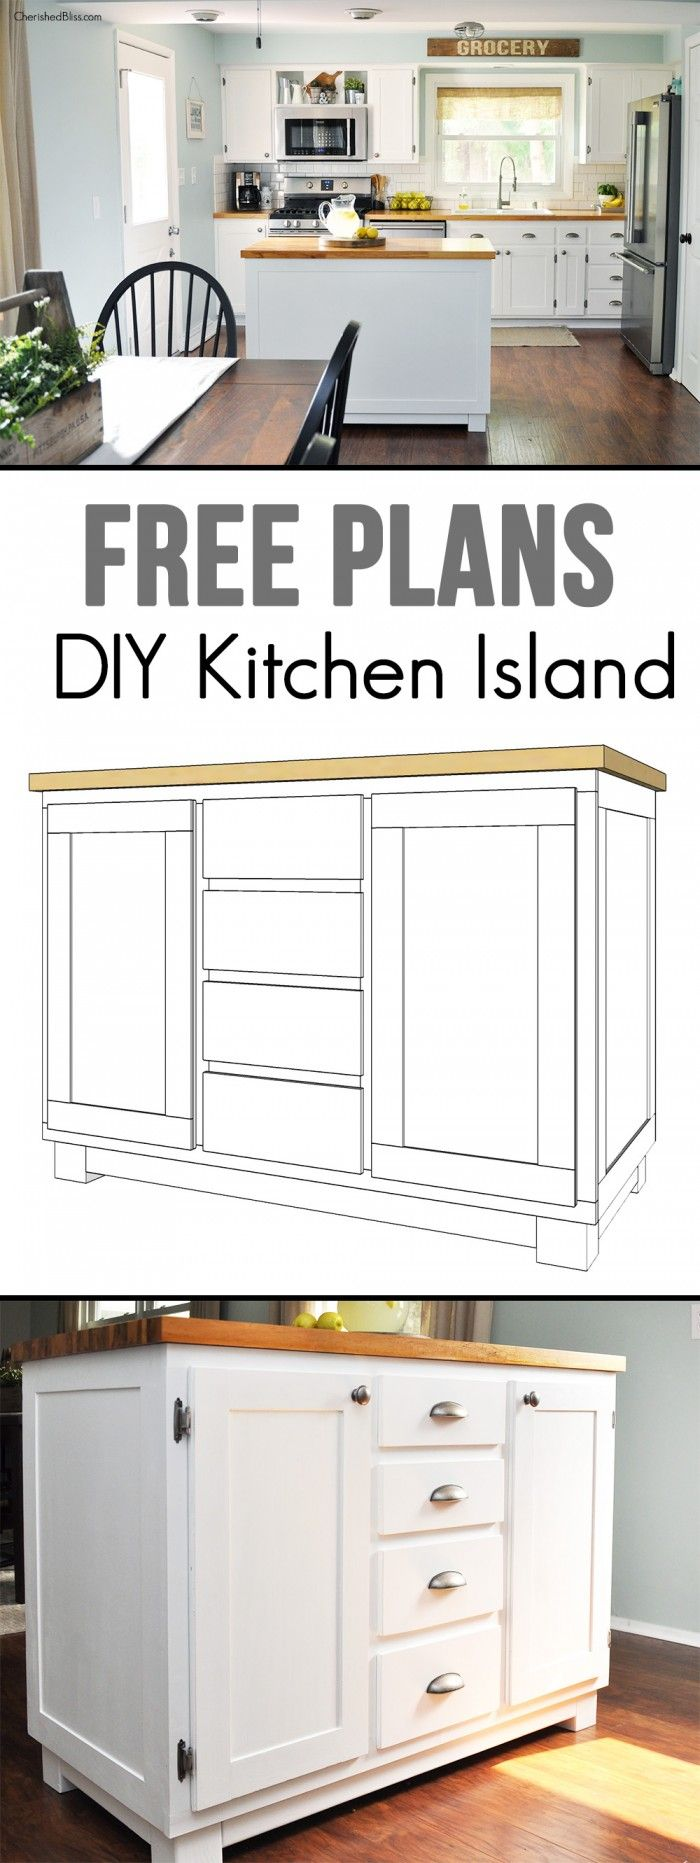 Cheap Kitchen Island best 25+ build kitchen island ideas on pinterest | build kitchen